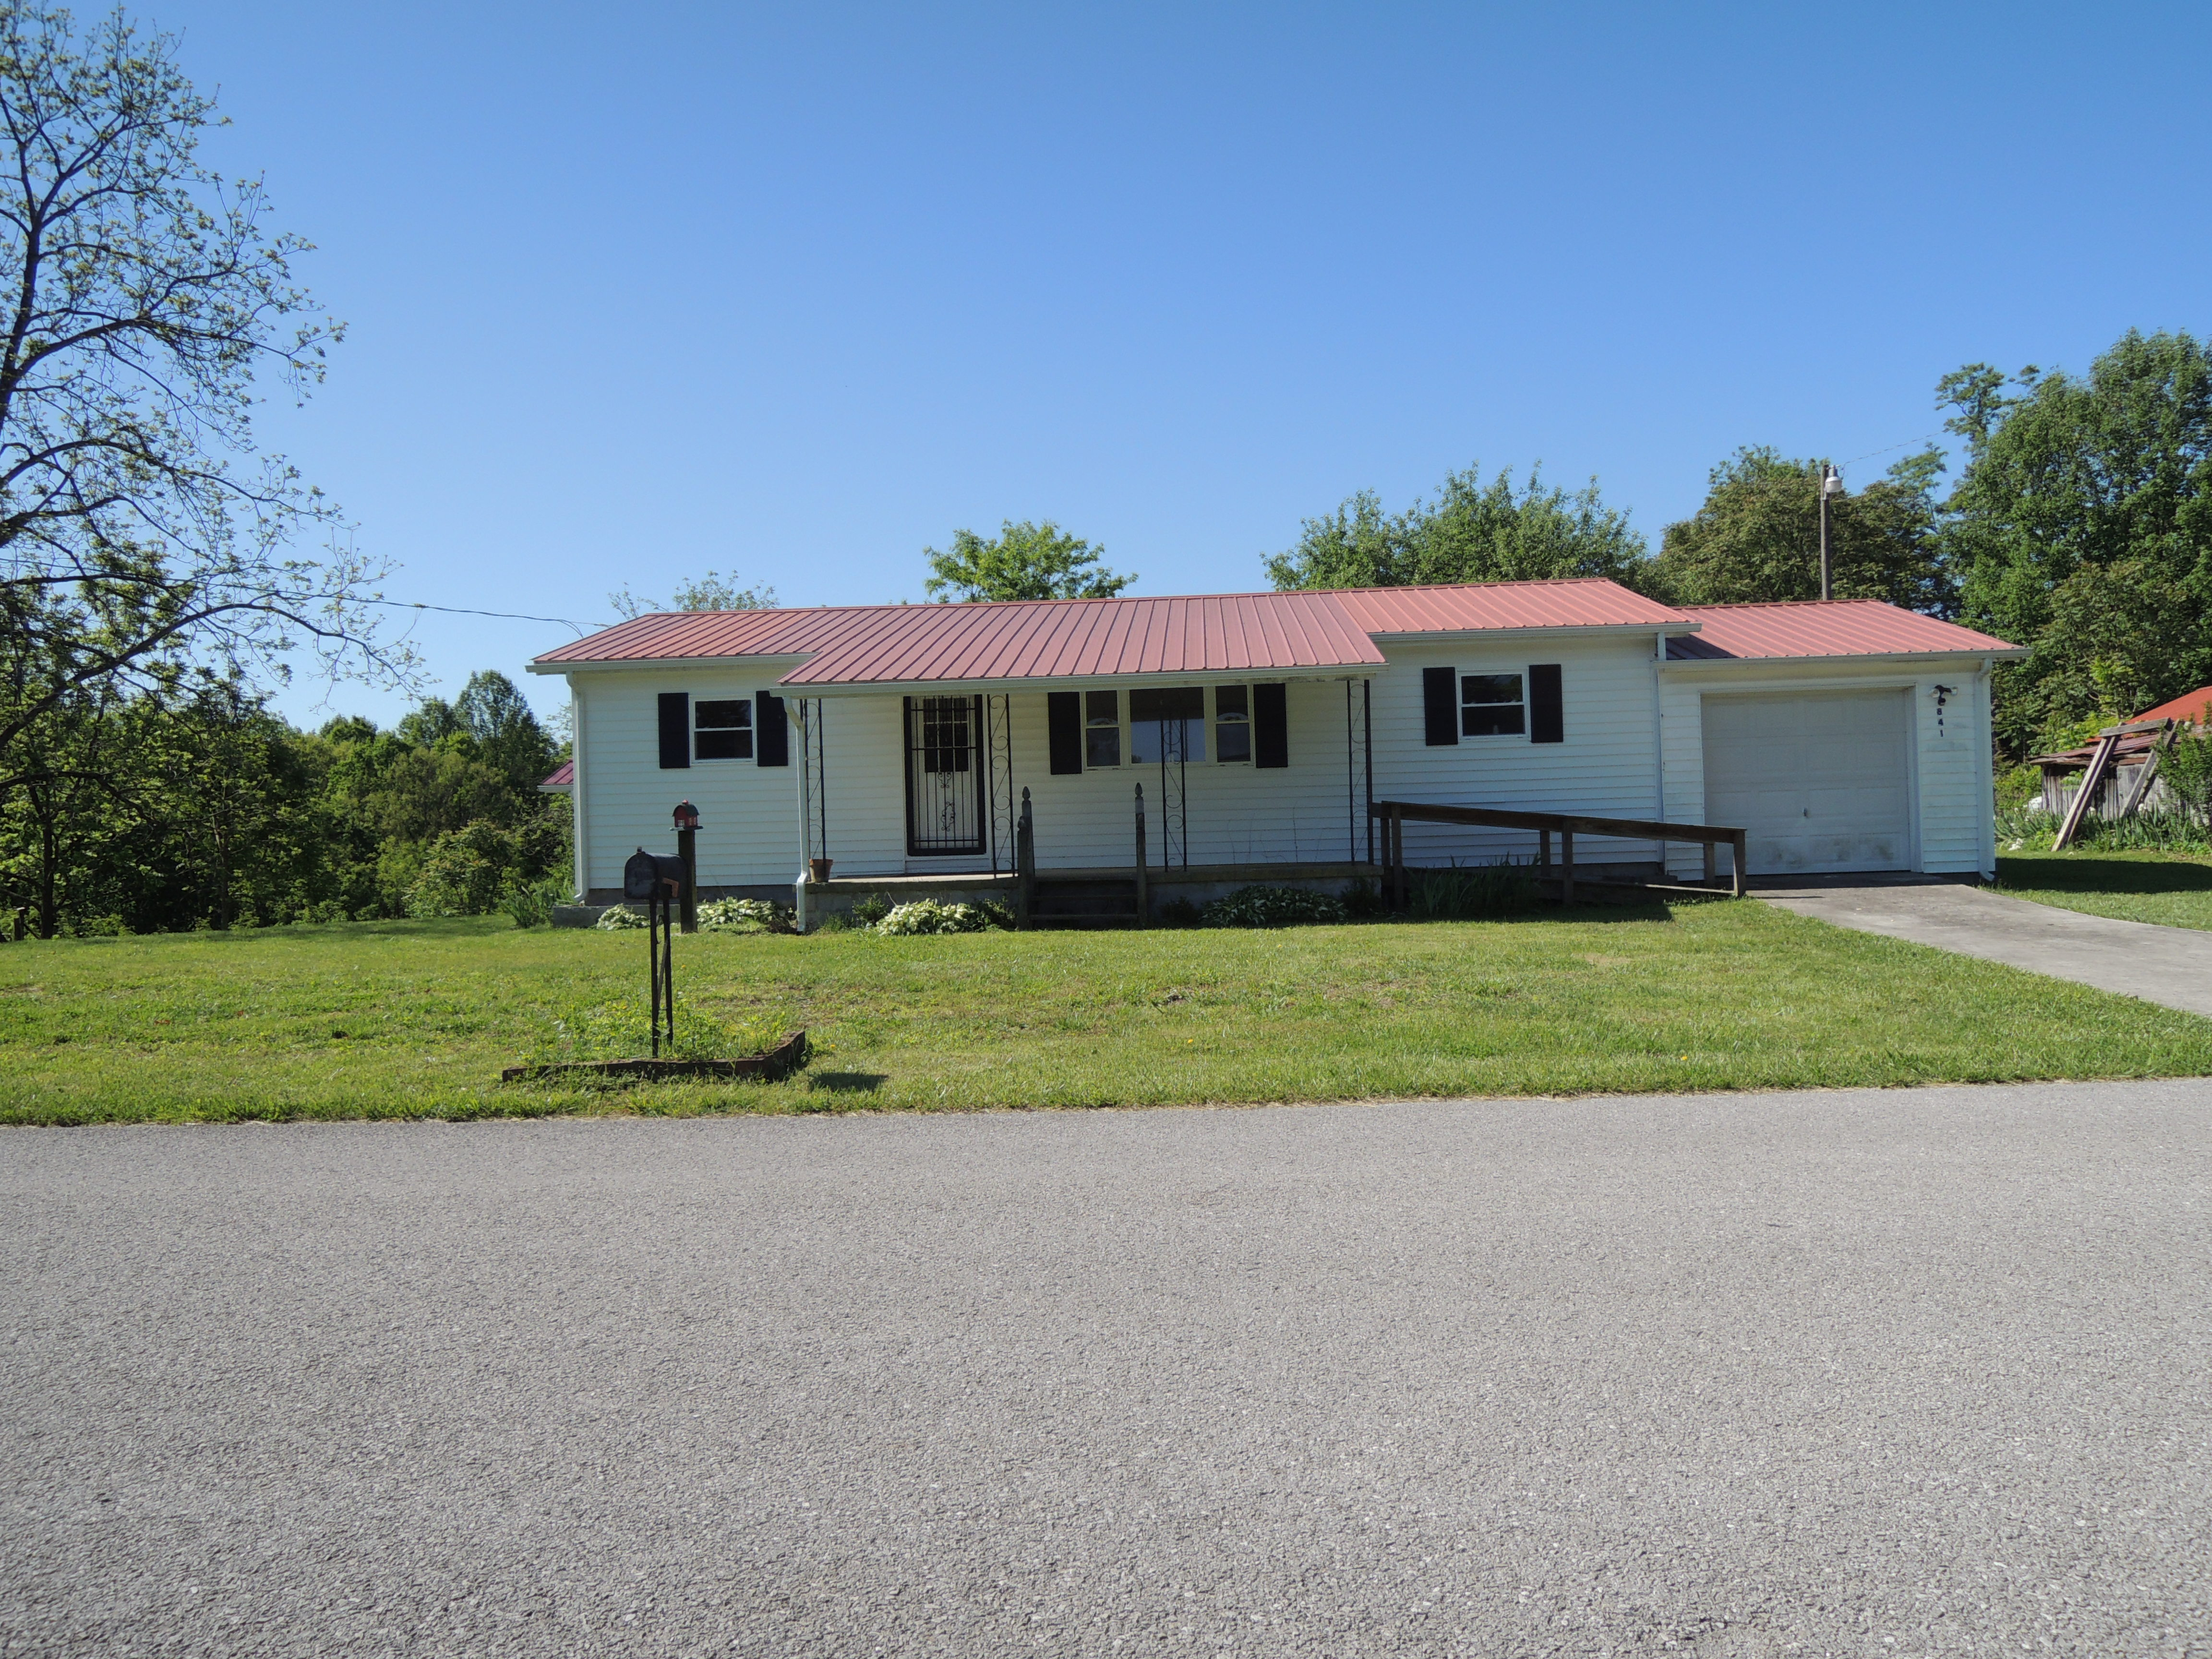 #1538 – 841 Yellow Cliff Rd.